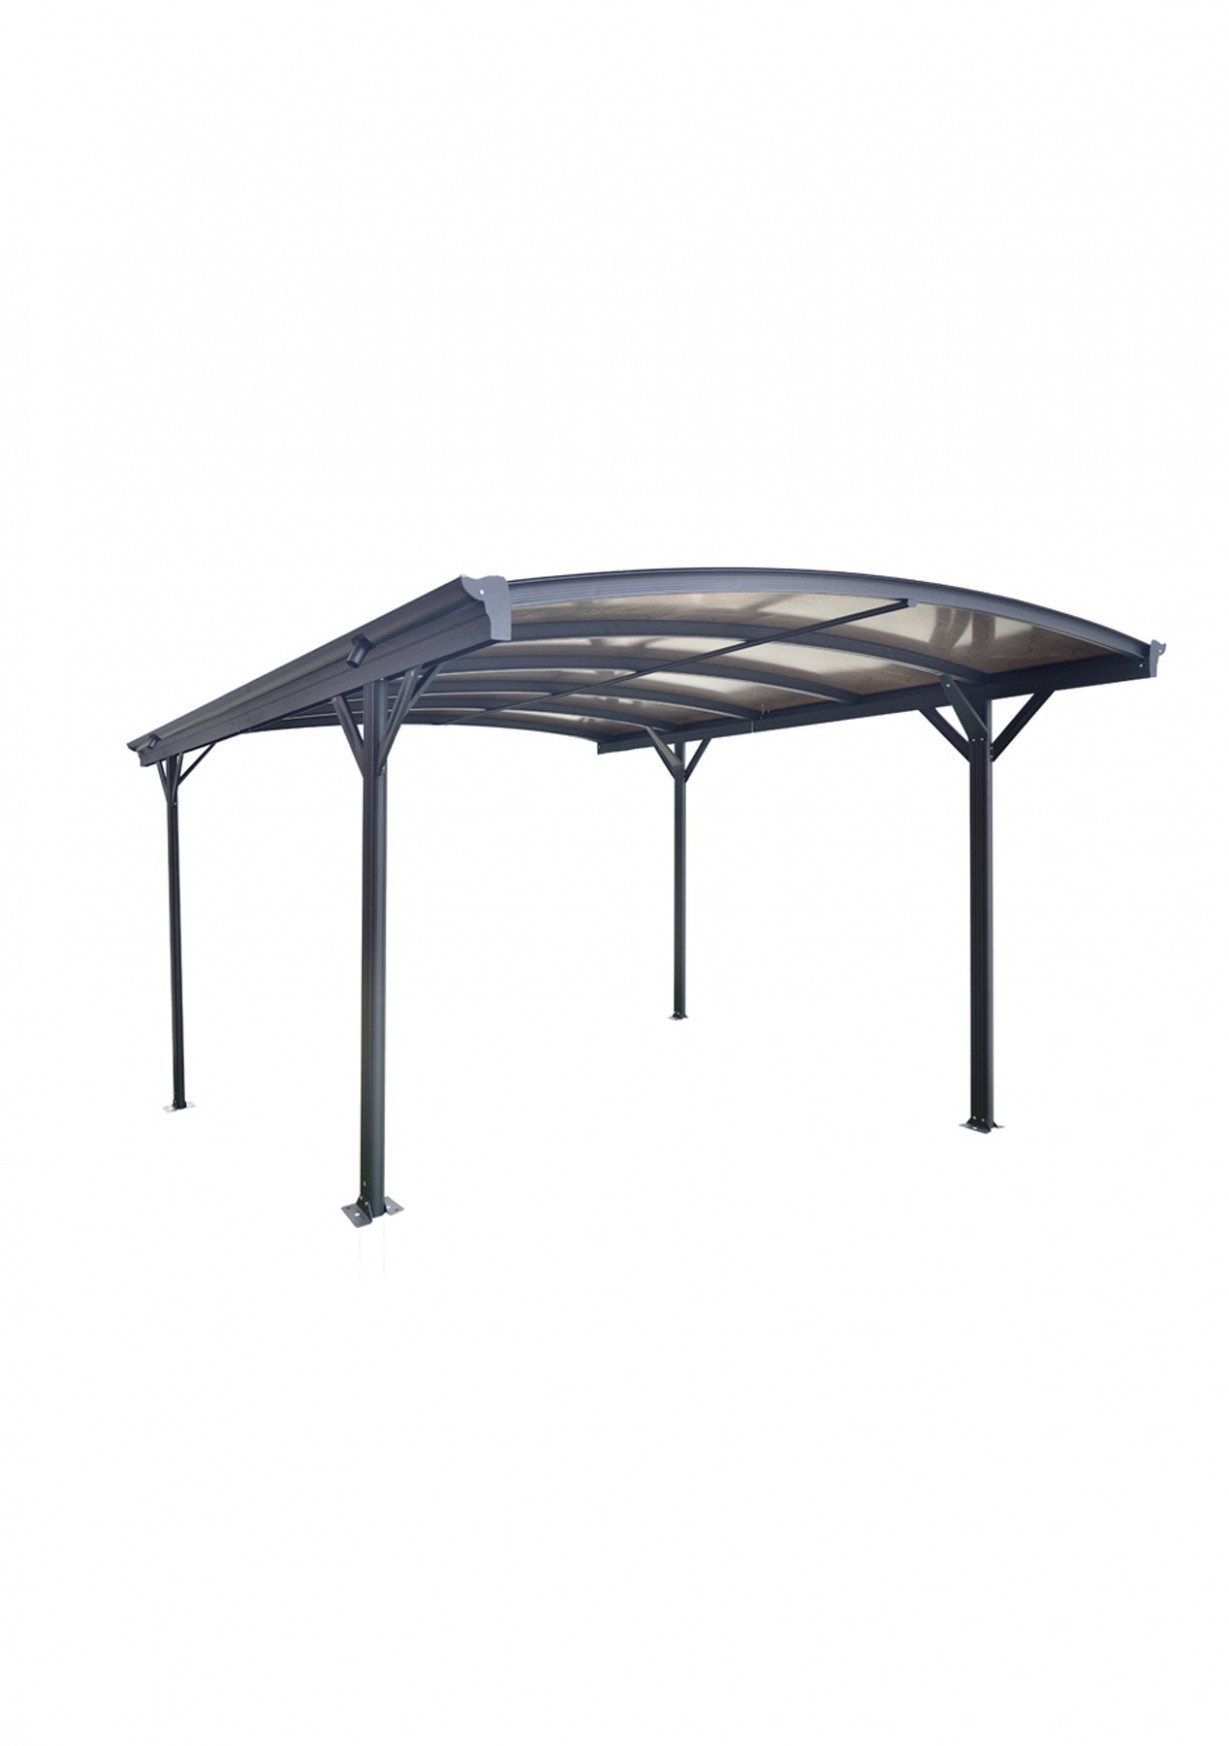 Curved Roof Freestanding Canopy/Carport 7L X 7W X 7H Curved Roof Carports